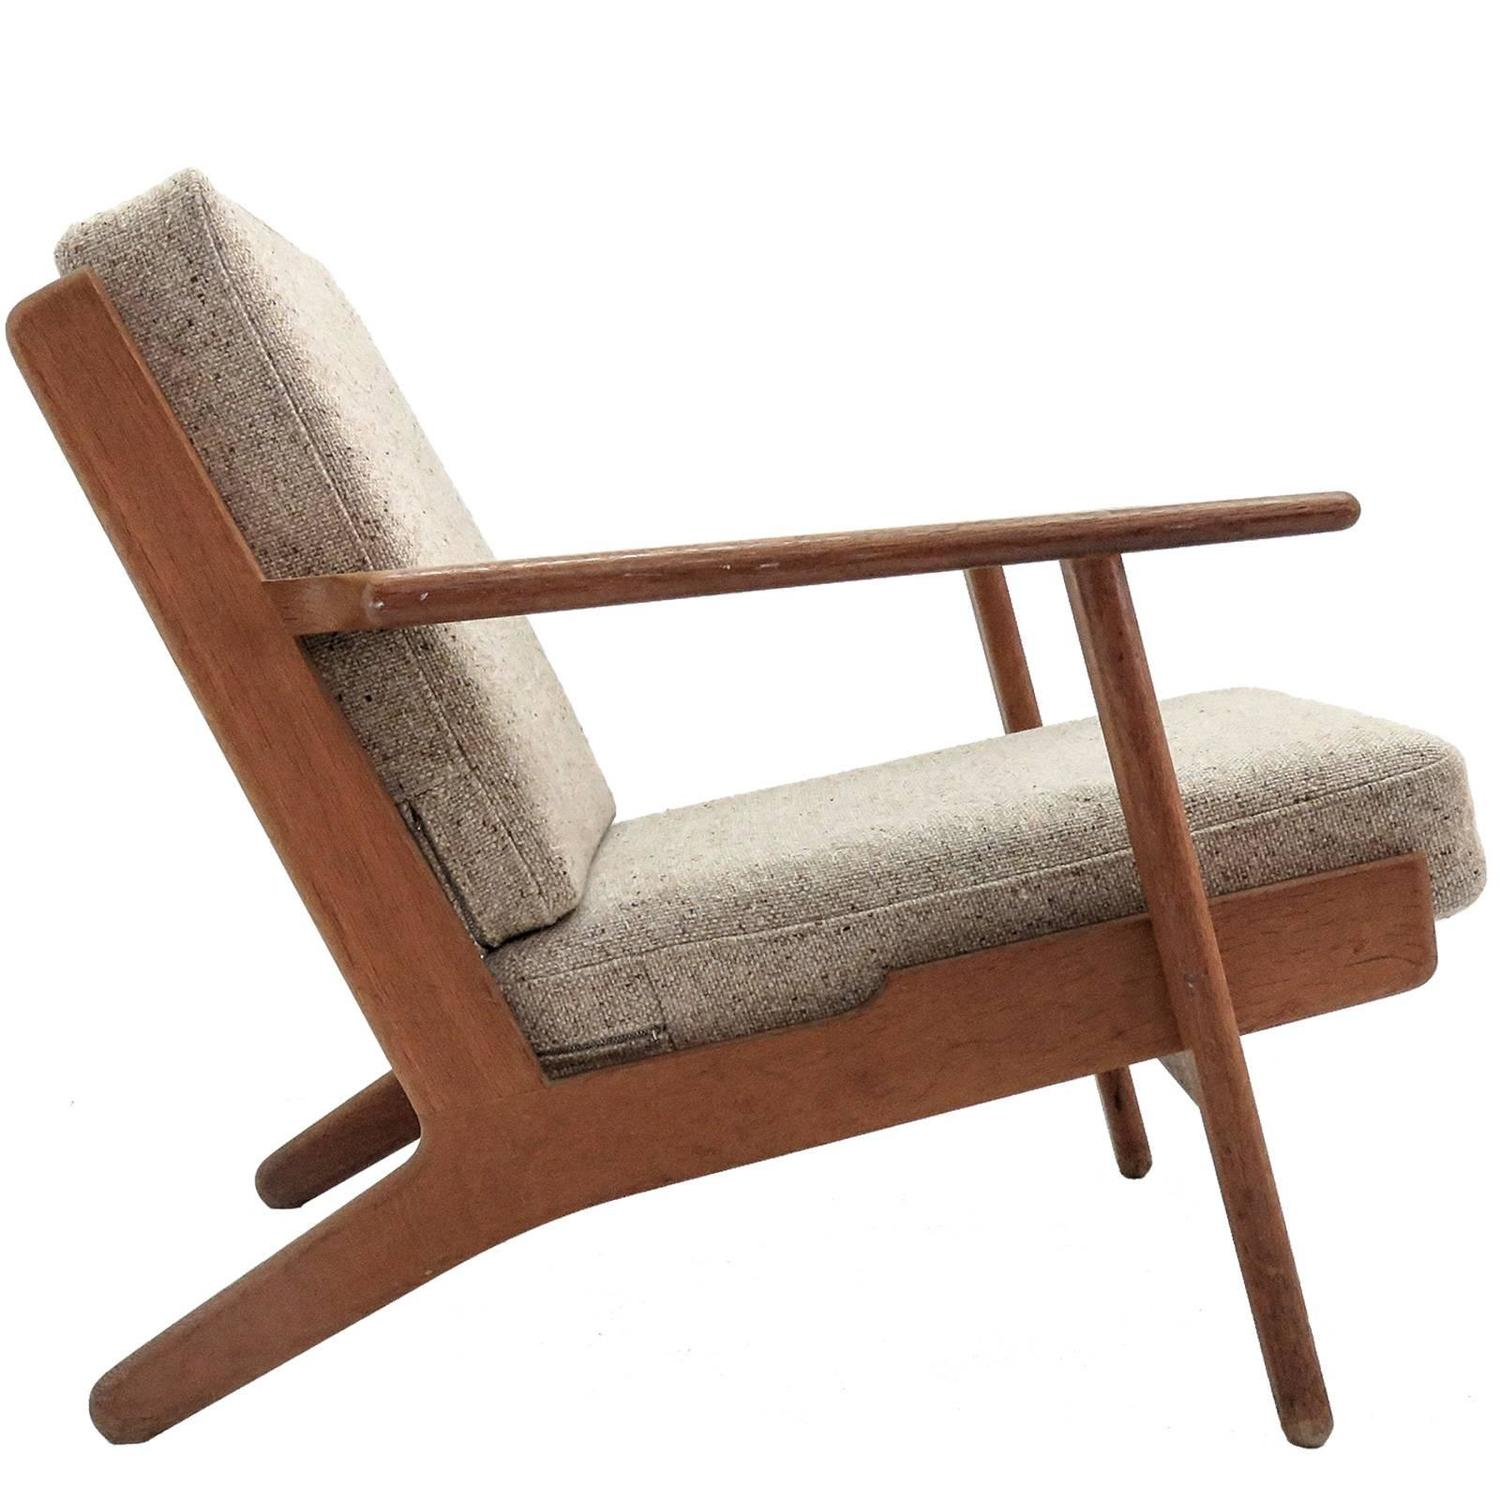 Hans J Wegner GE 290 Lounge Chair For Sale at 1stdibs